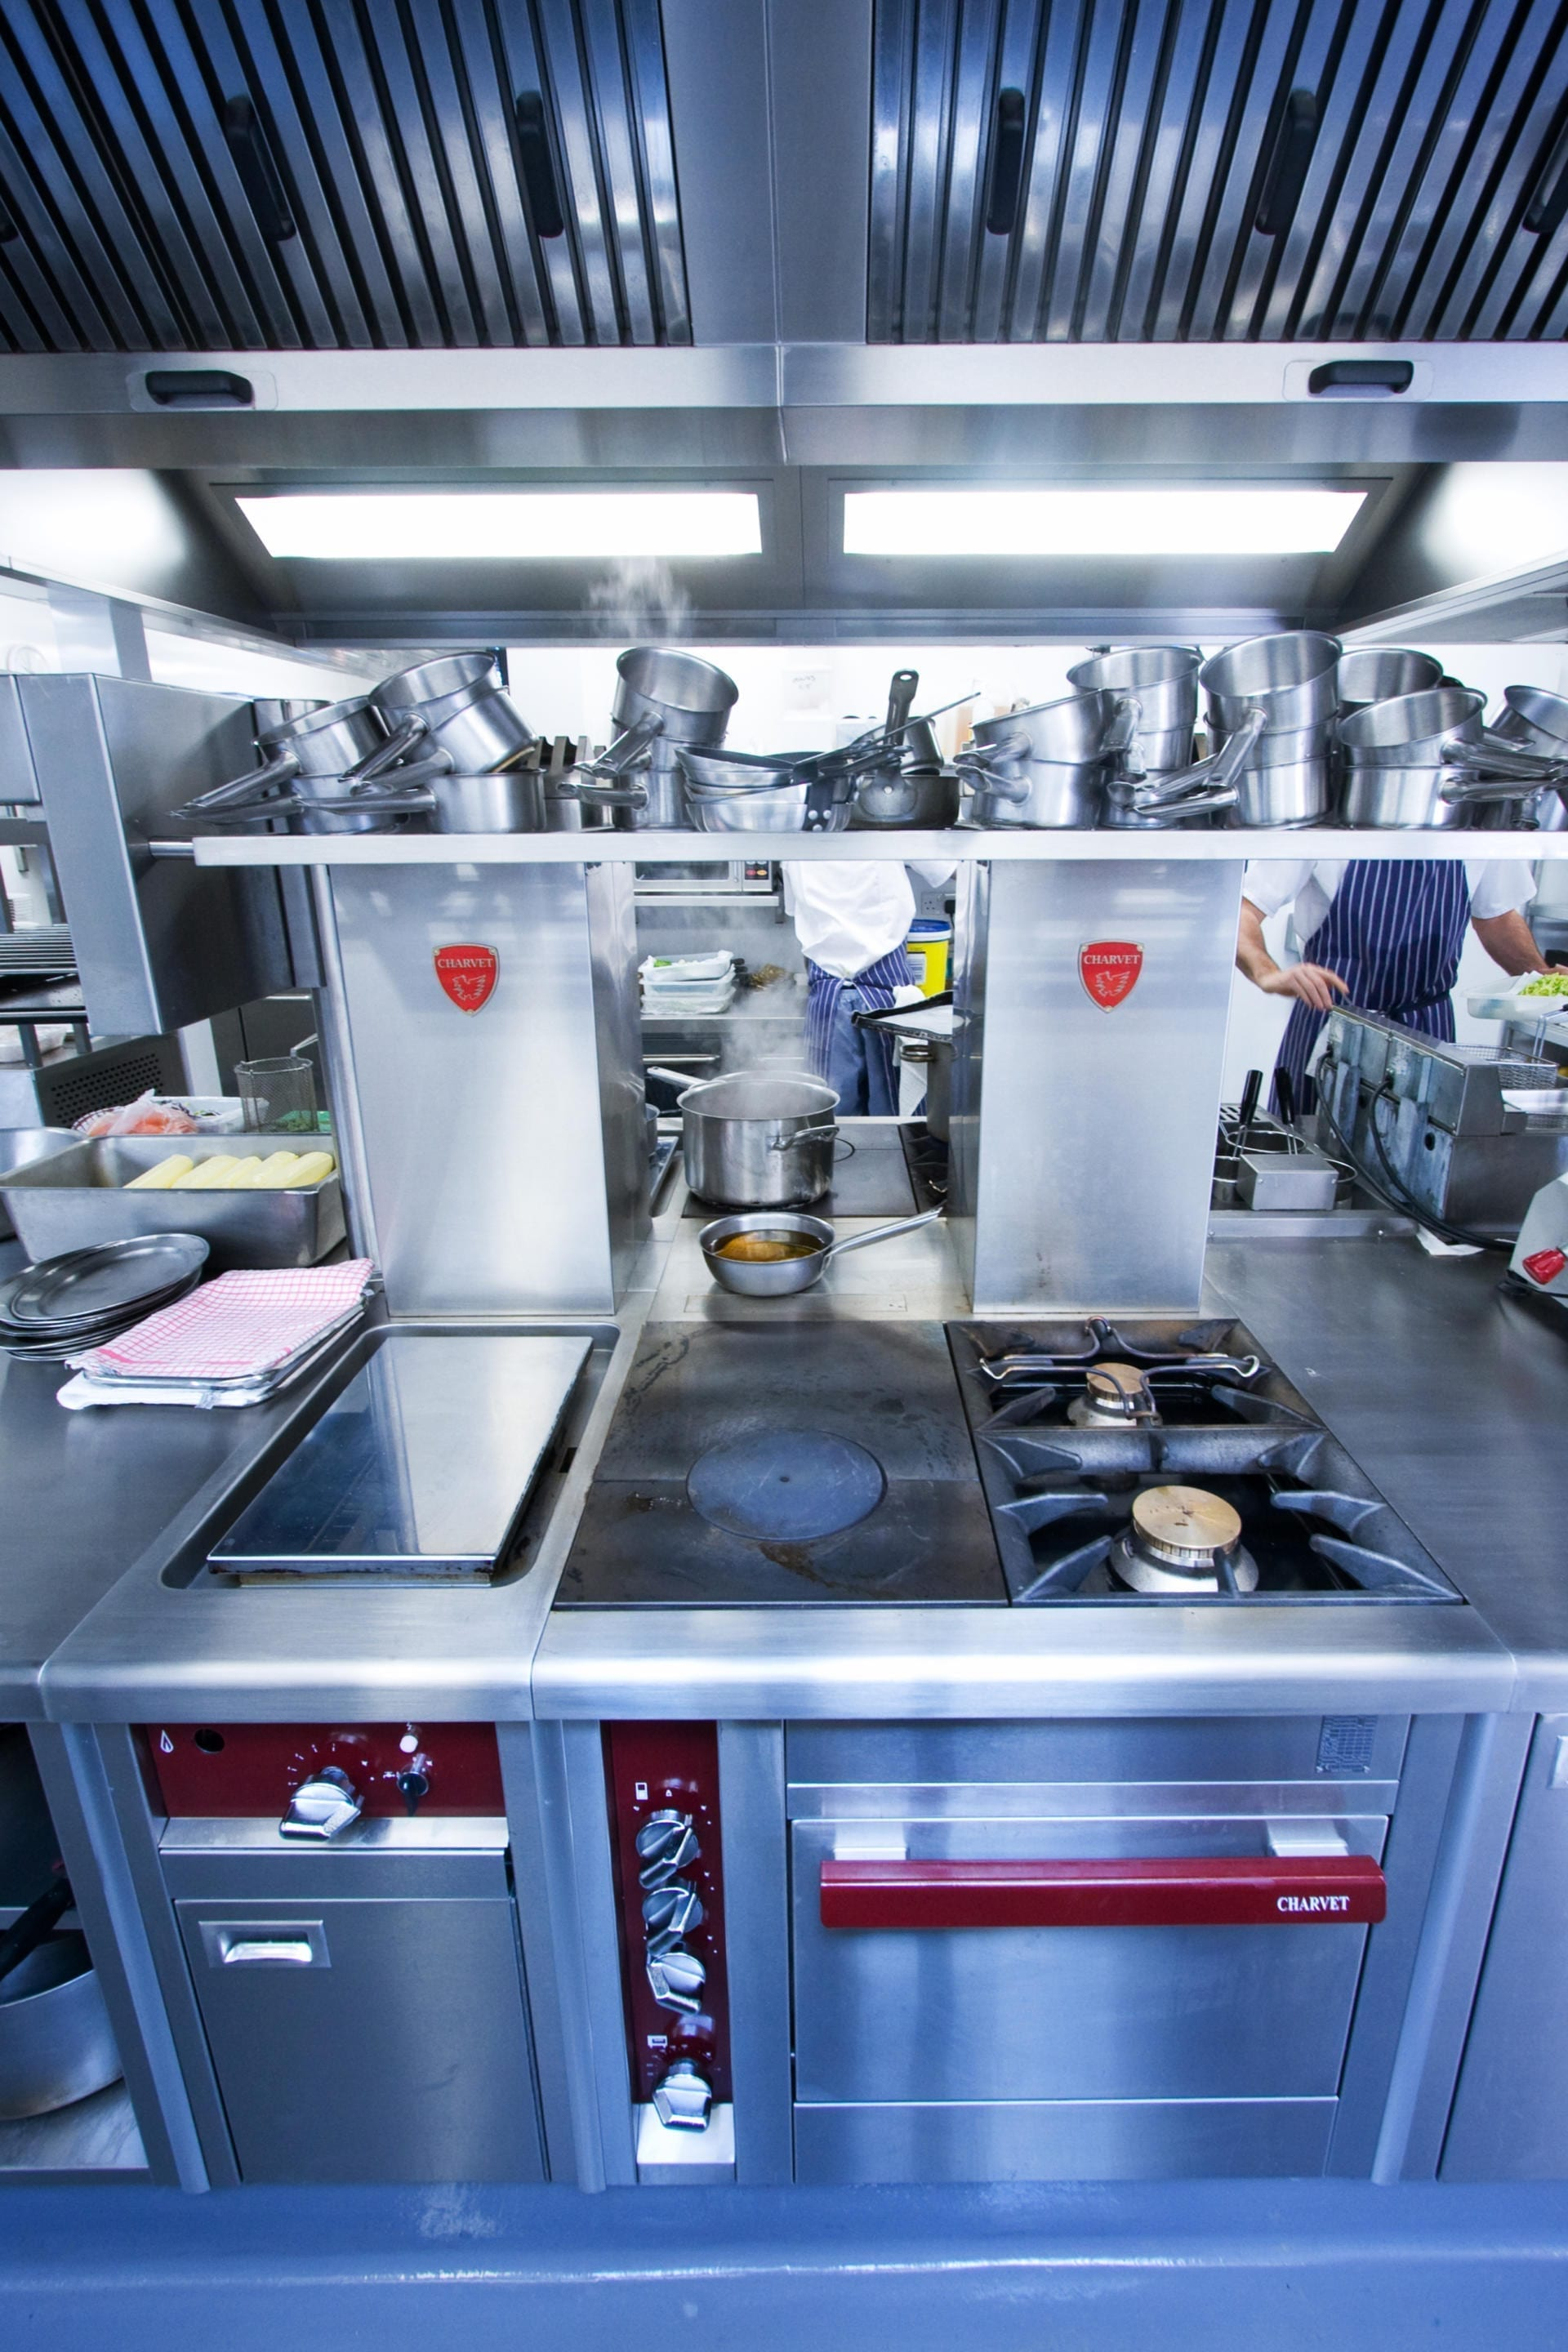 Ockenden-Manor-Hotel-Sussex-Restaurant-Kitchen-Fabrication-Stainless-Steel-Commercial-spacecatering_4